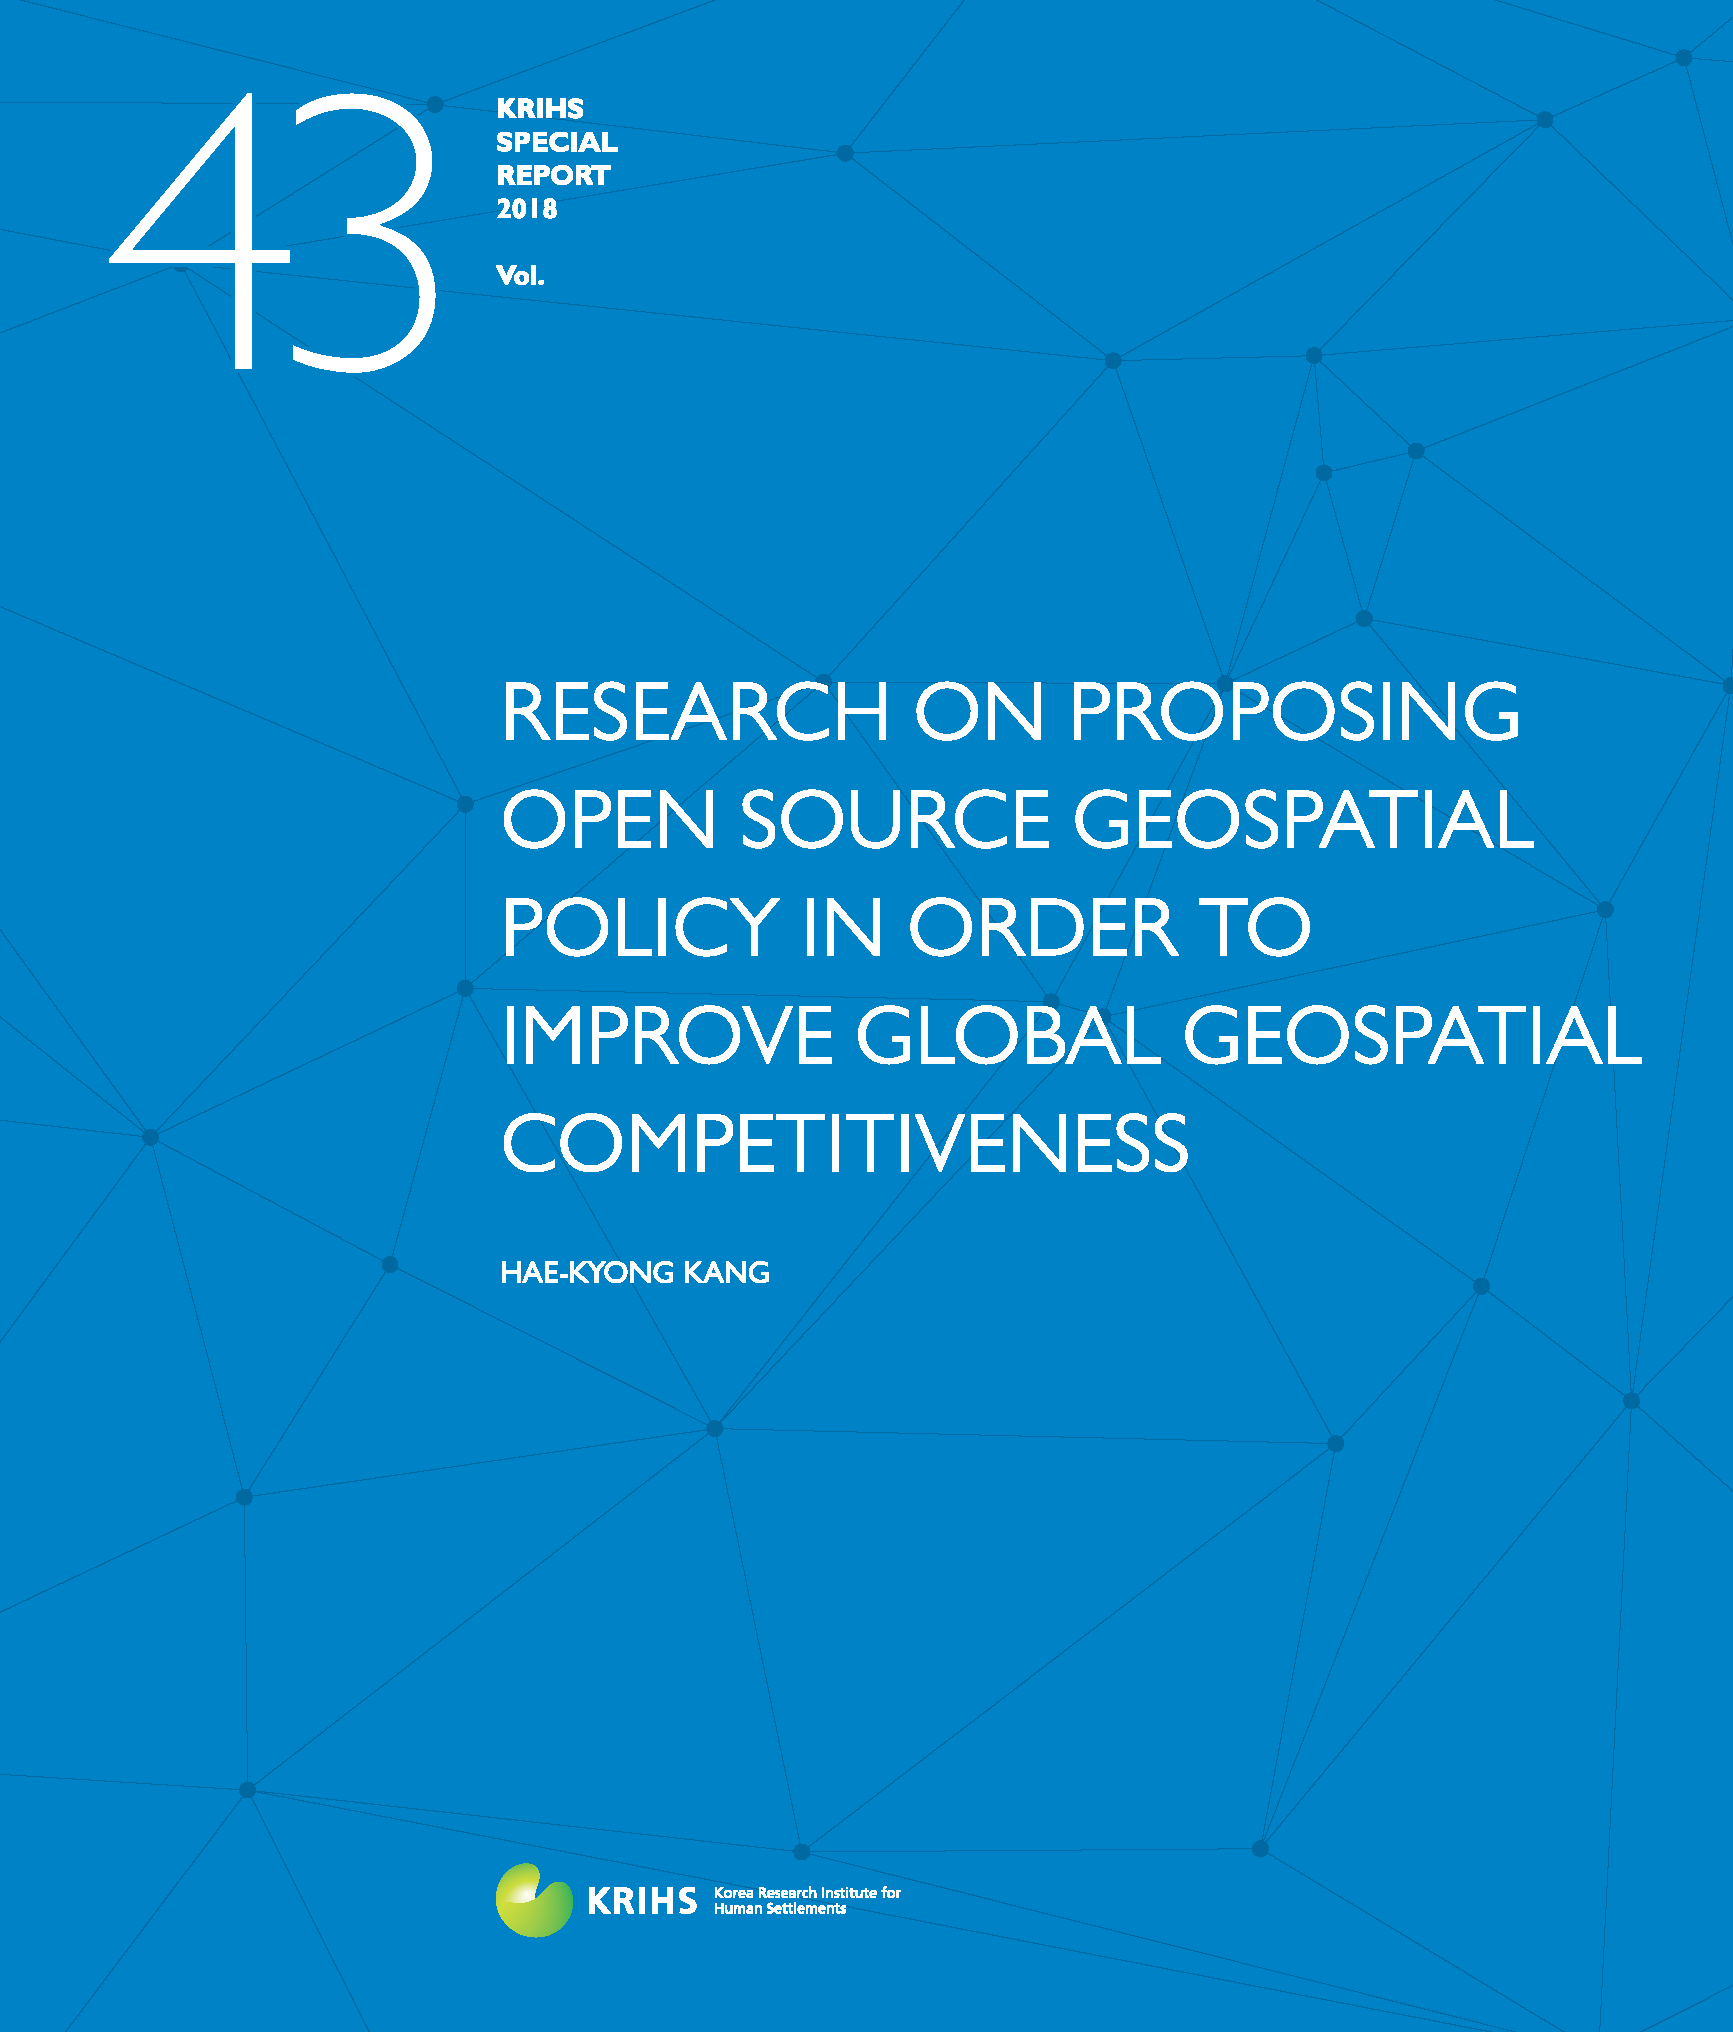 [KRIHS SPECIAL REPORT 43] RESEARCH ON PROPOSING OPEN SOURCE GEOSPATIAL POLICY IN ORDER TO IMPROVE GLOBAL GEOSPATIAL COMPETITIVENESS표지